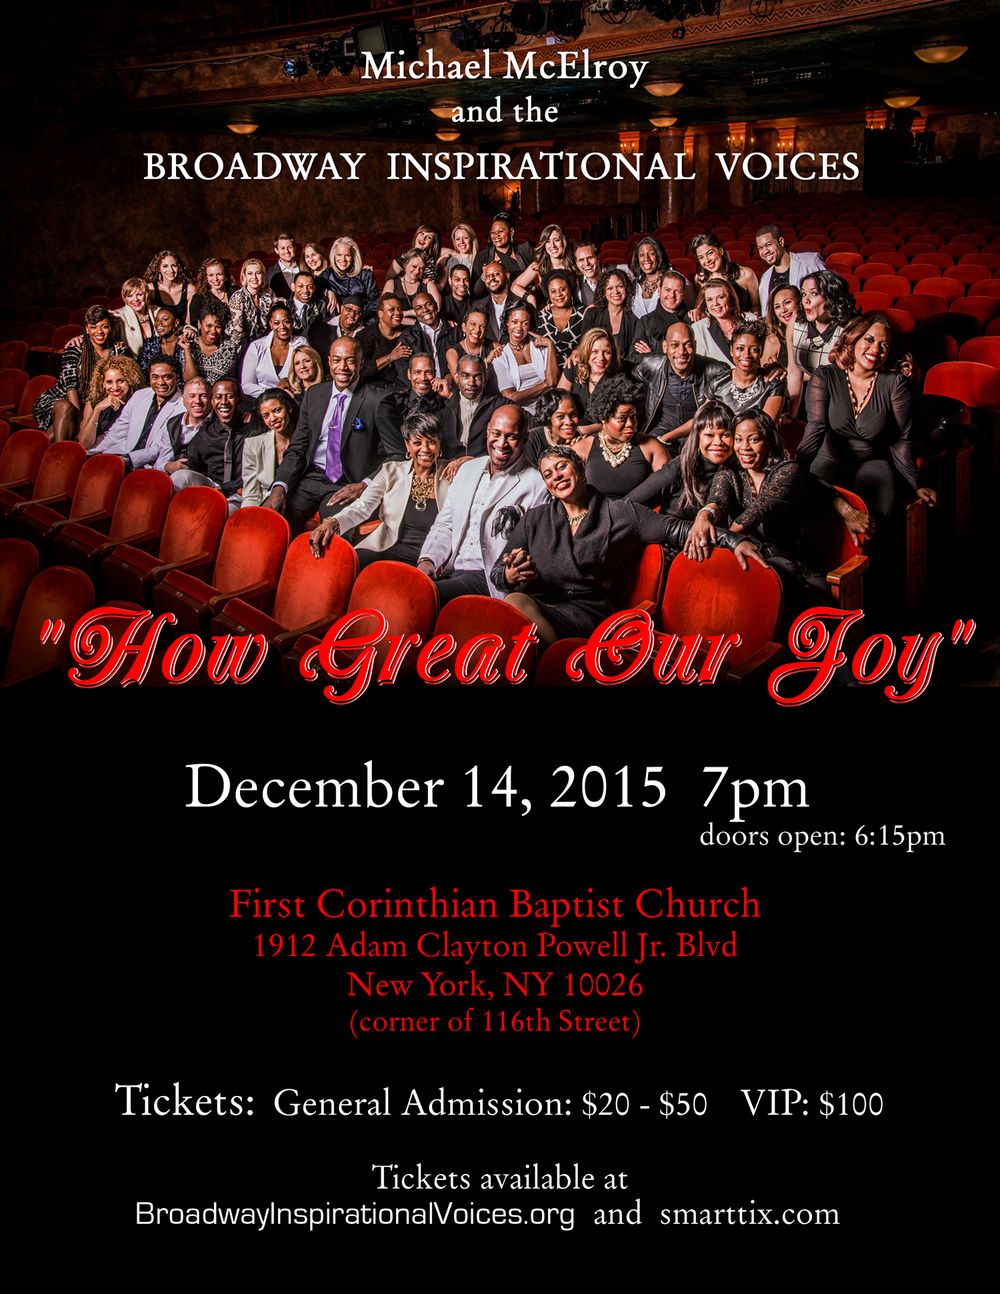 How Great Our Joy Flyer (1500x1941).jpg